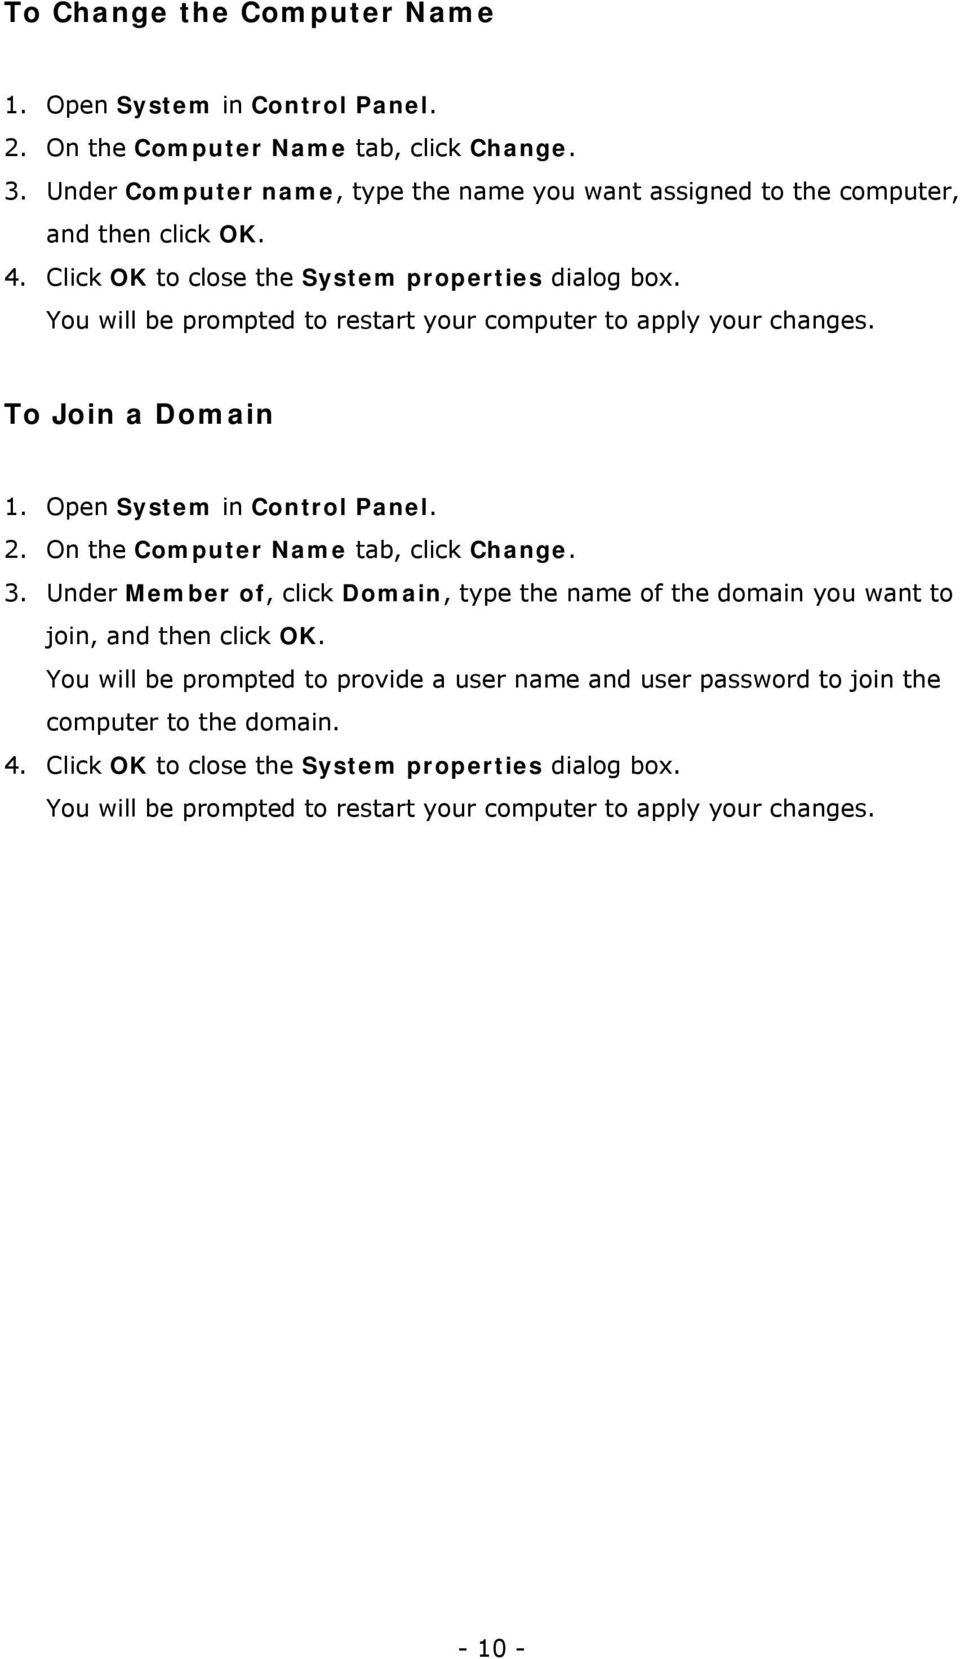 You will be prompted to restart your computer to apply your changes. To Join a Domain 1. Open System in Control Panel. 2. On the Computer Name tab, click Change. 3.